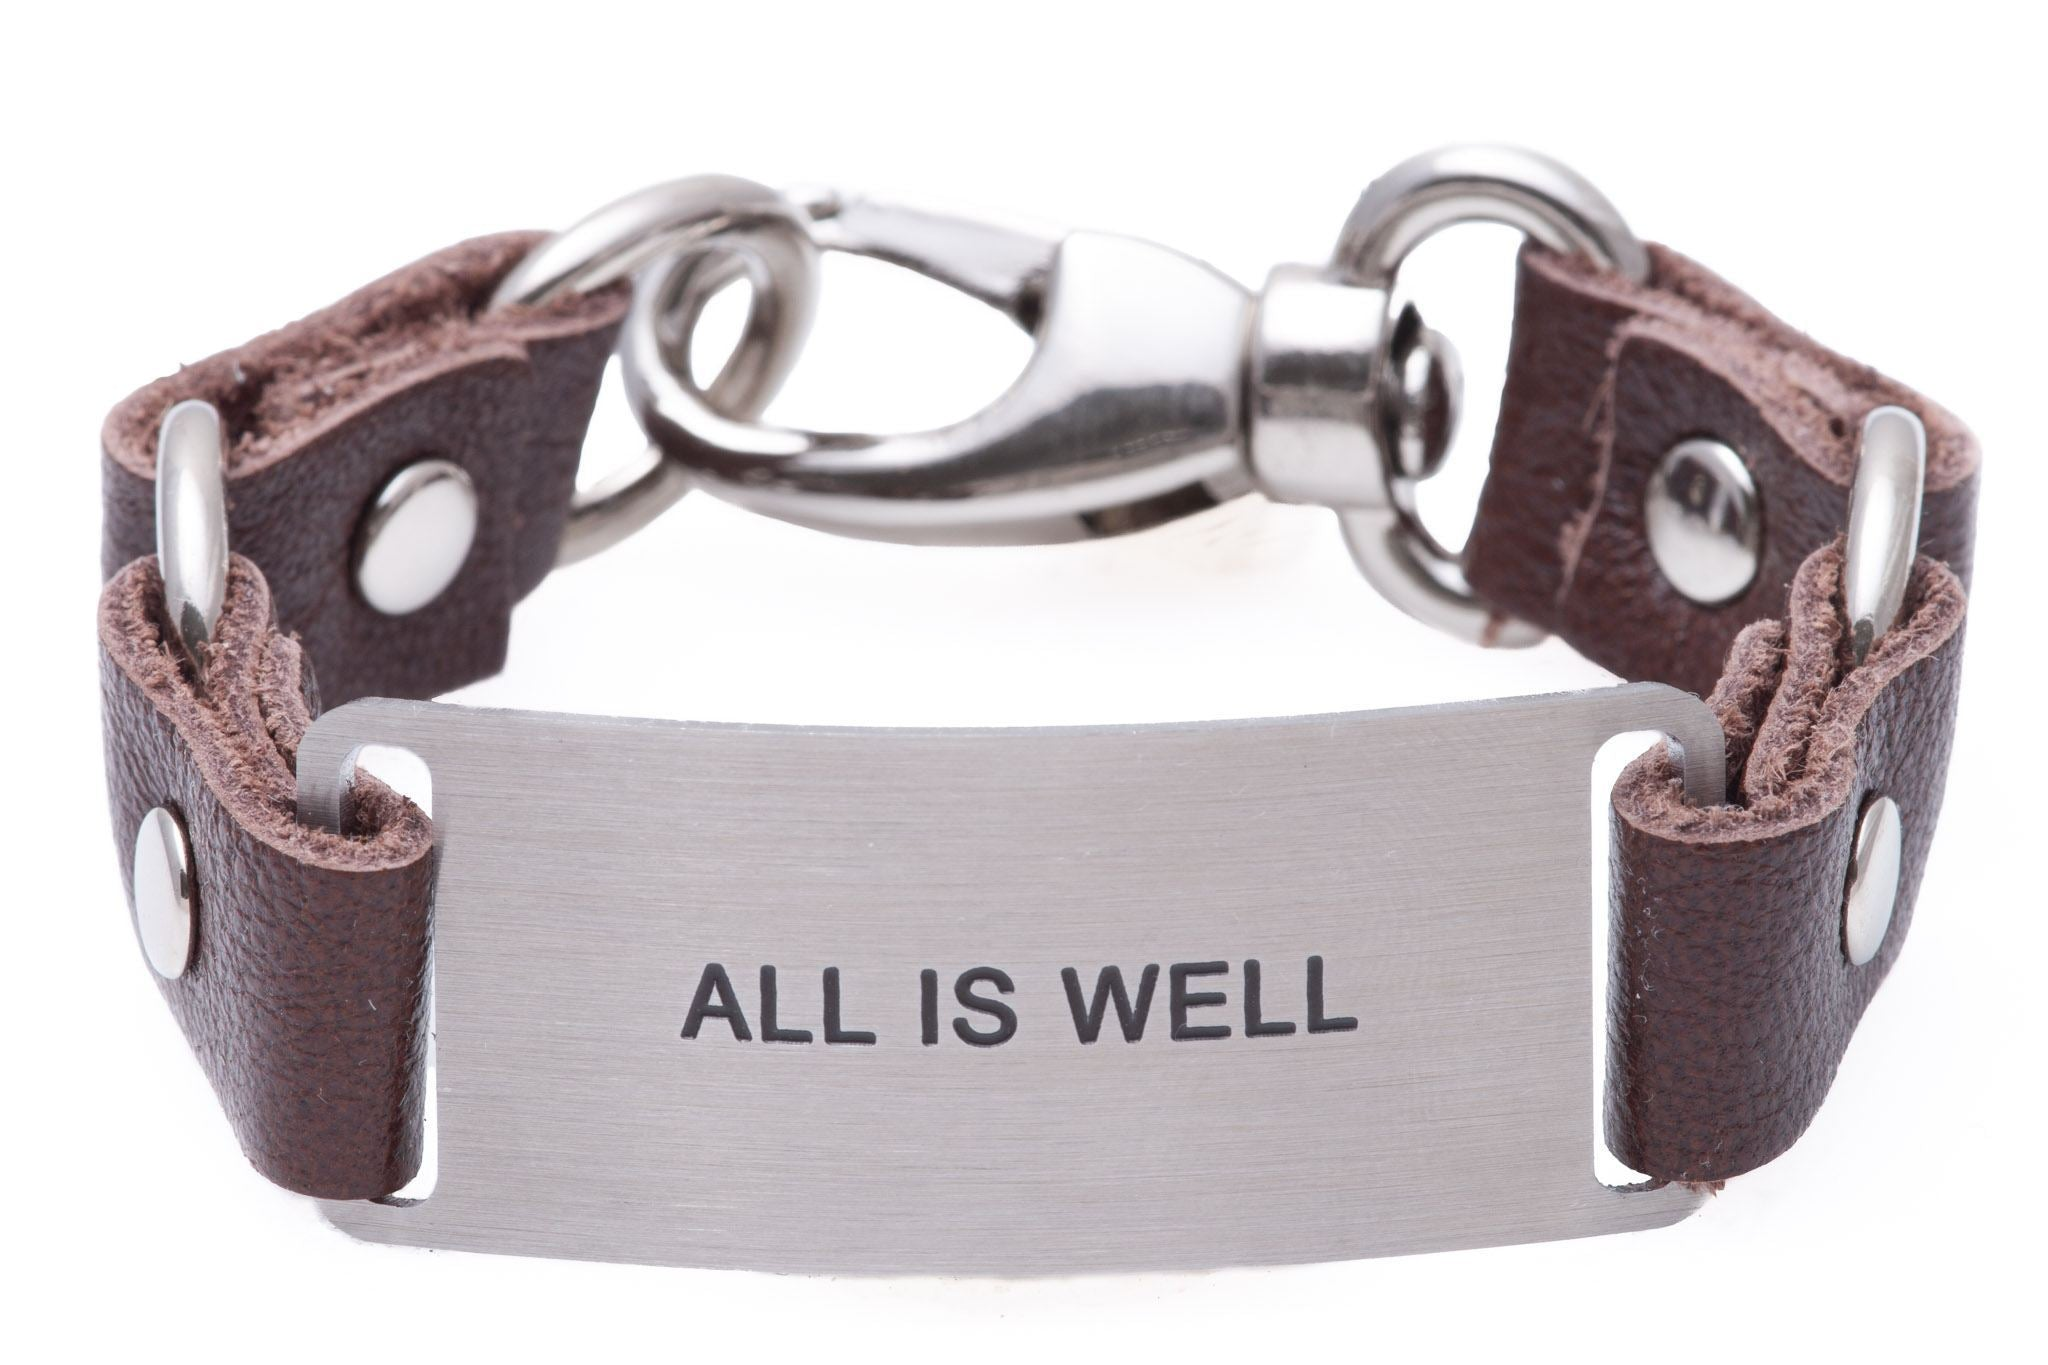 Inspirational Message Bracelet All is Well Chocolate Brown Leather